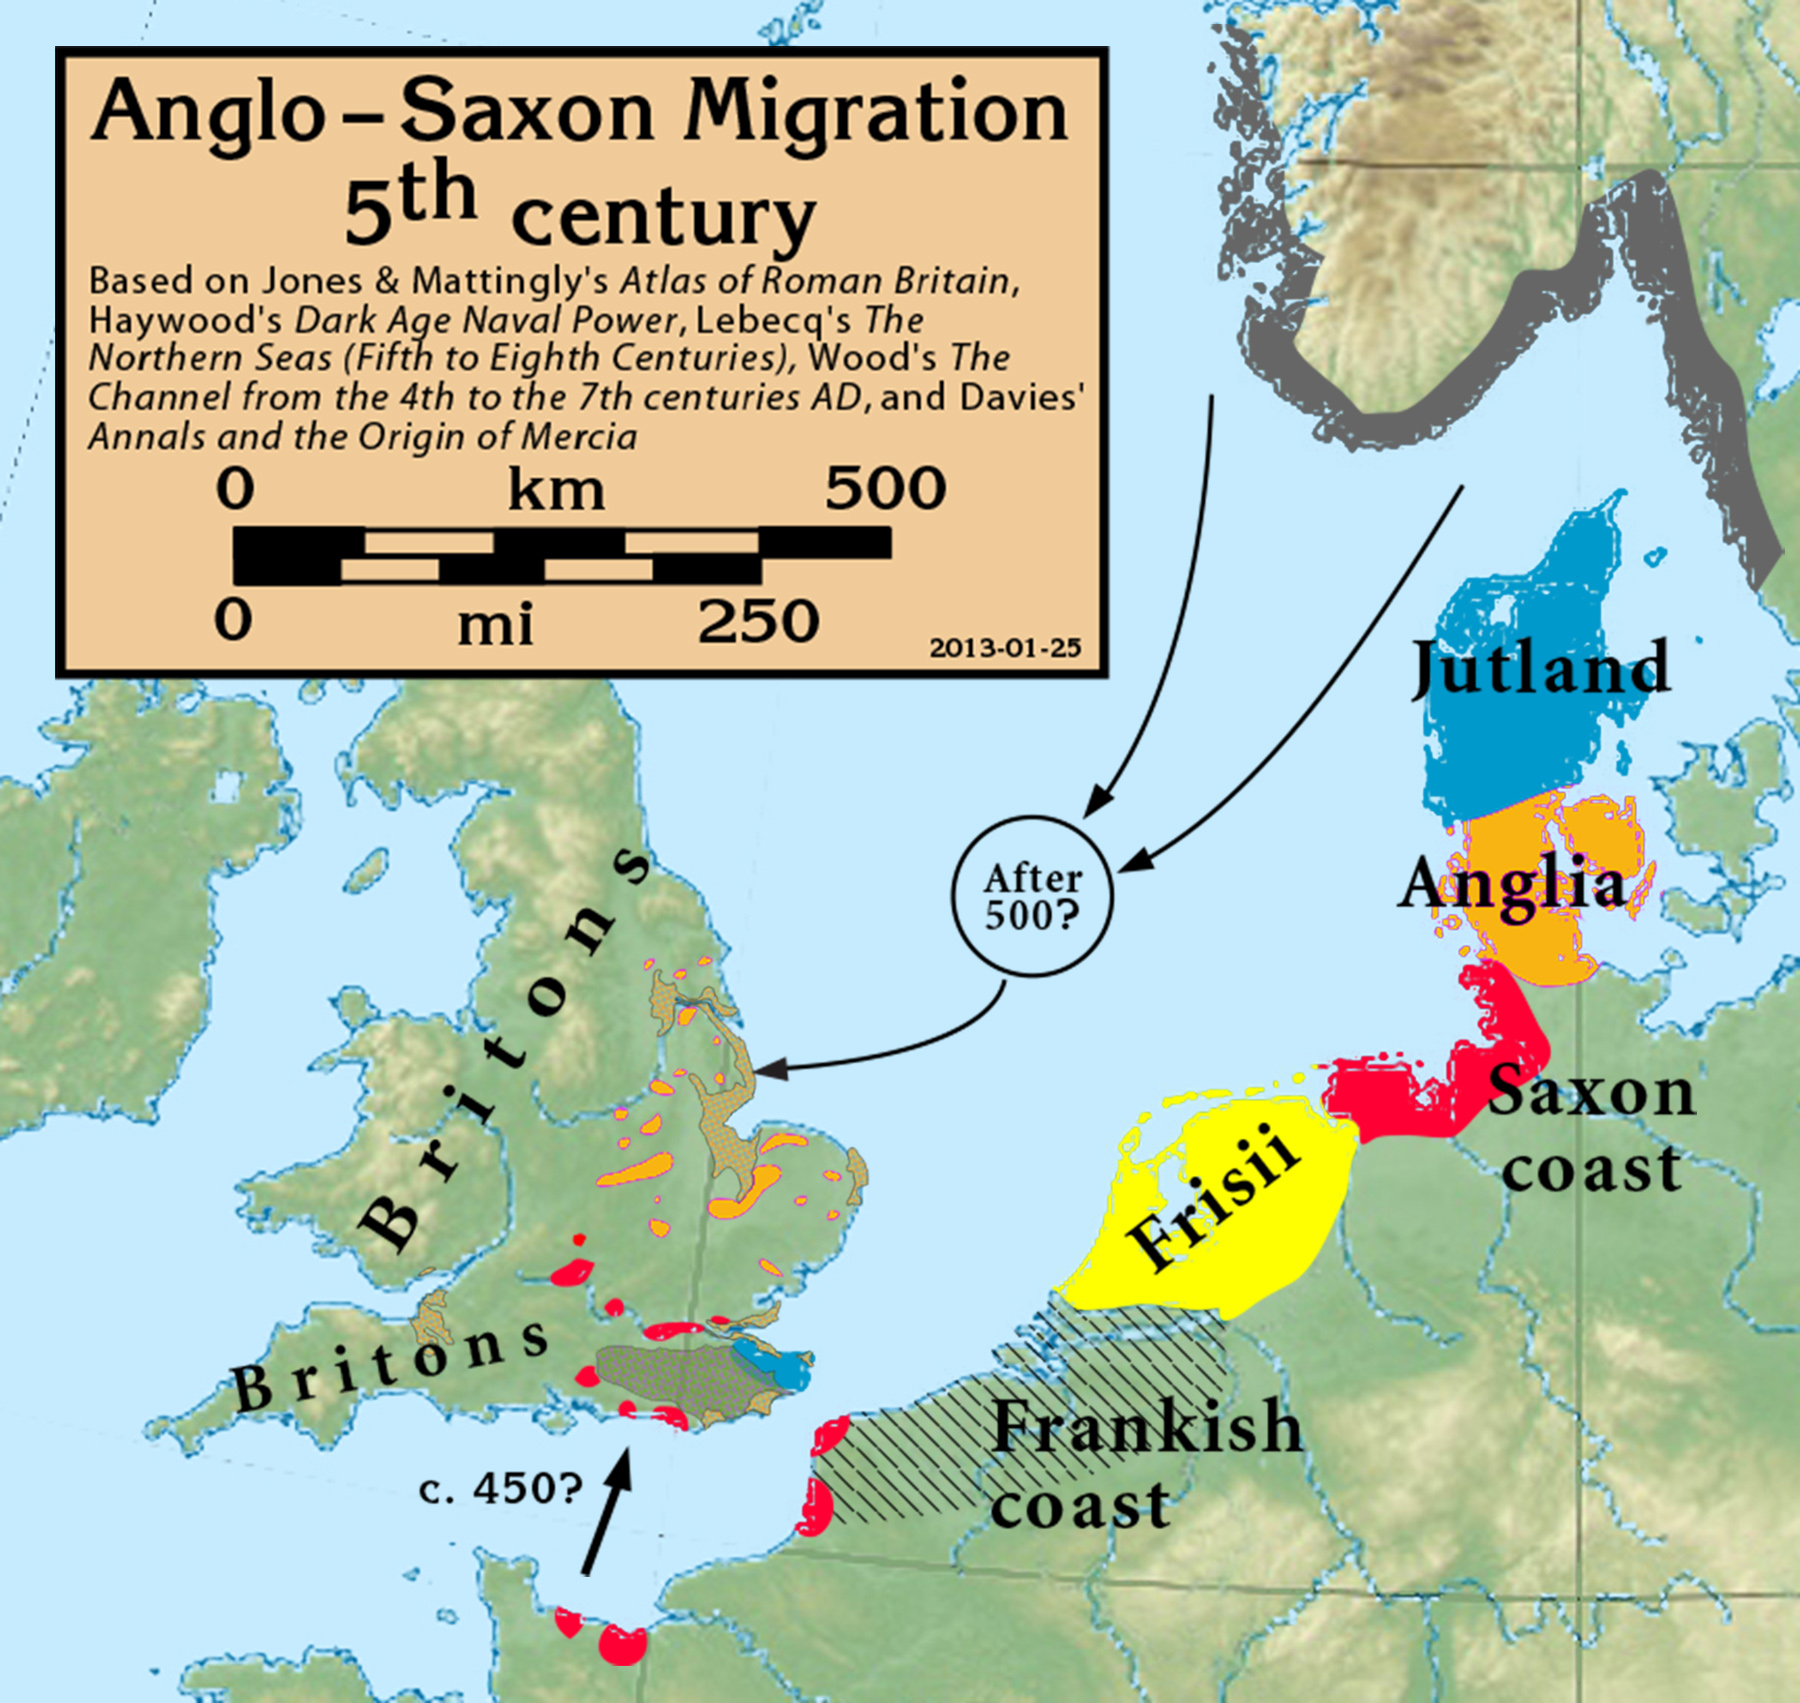 Anglo Saxon Map Of England.File Anglo Saxon Migration 5th Cen Jpg Wikimedia Commons